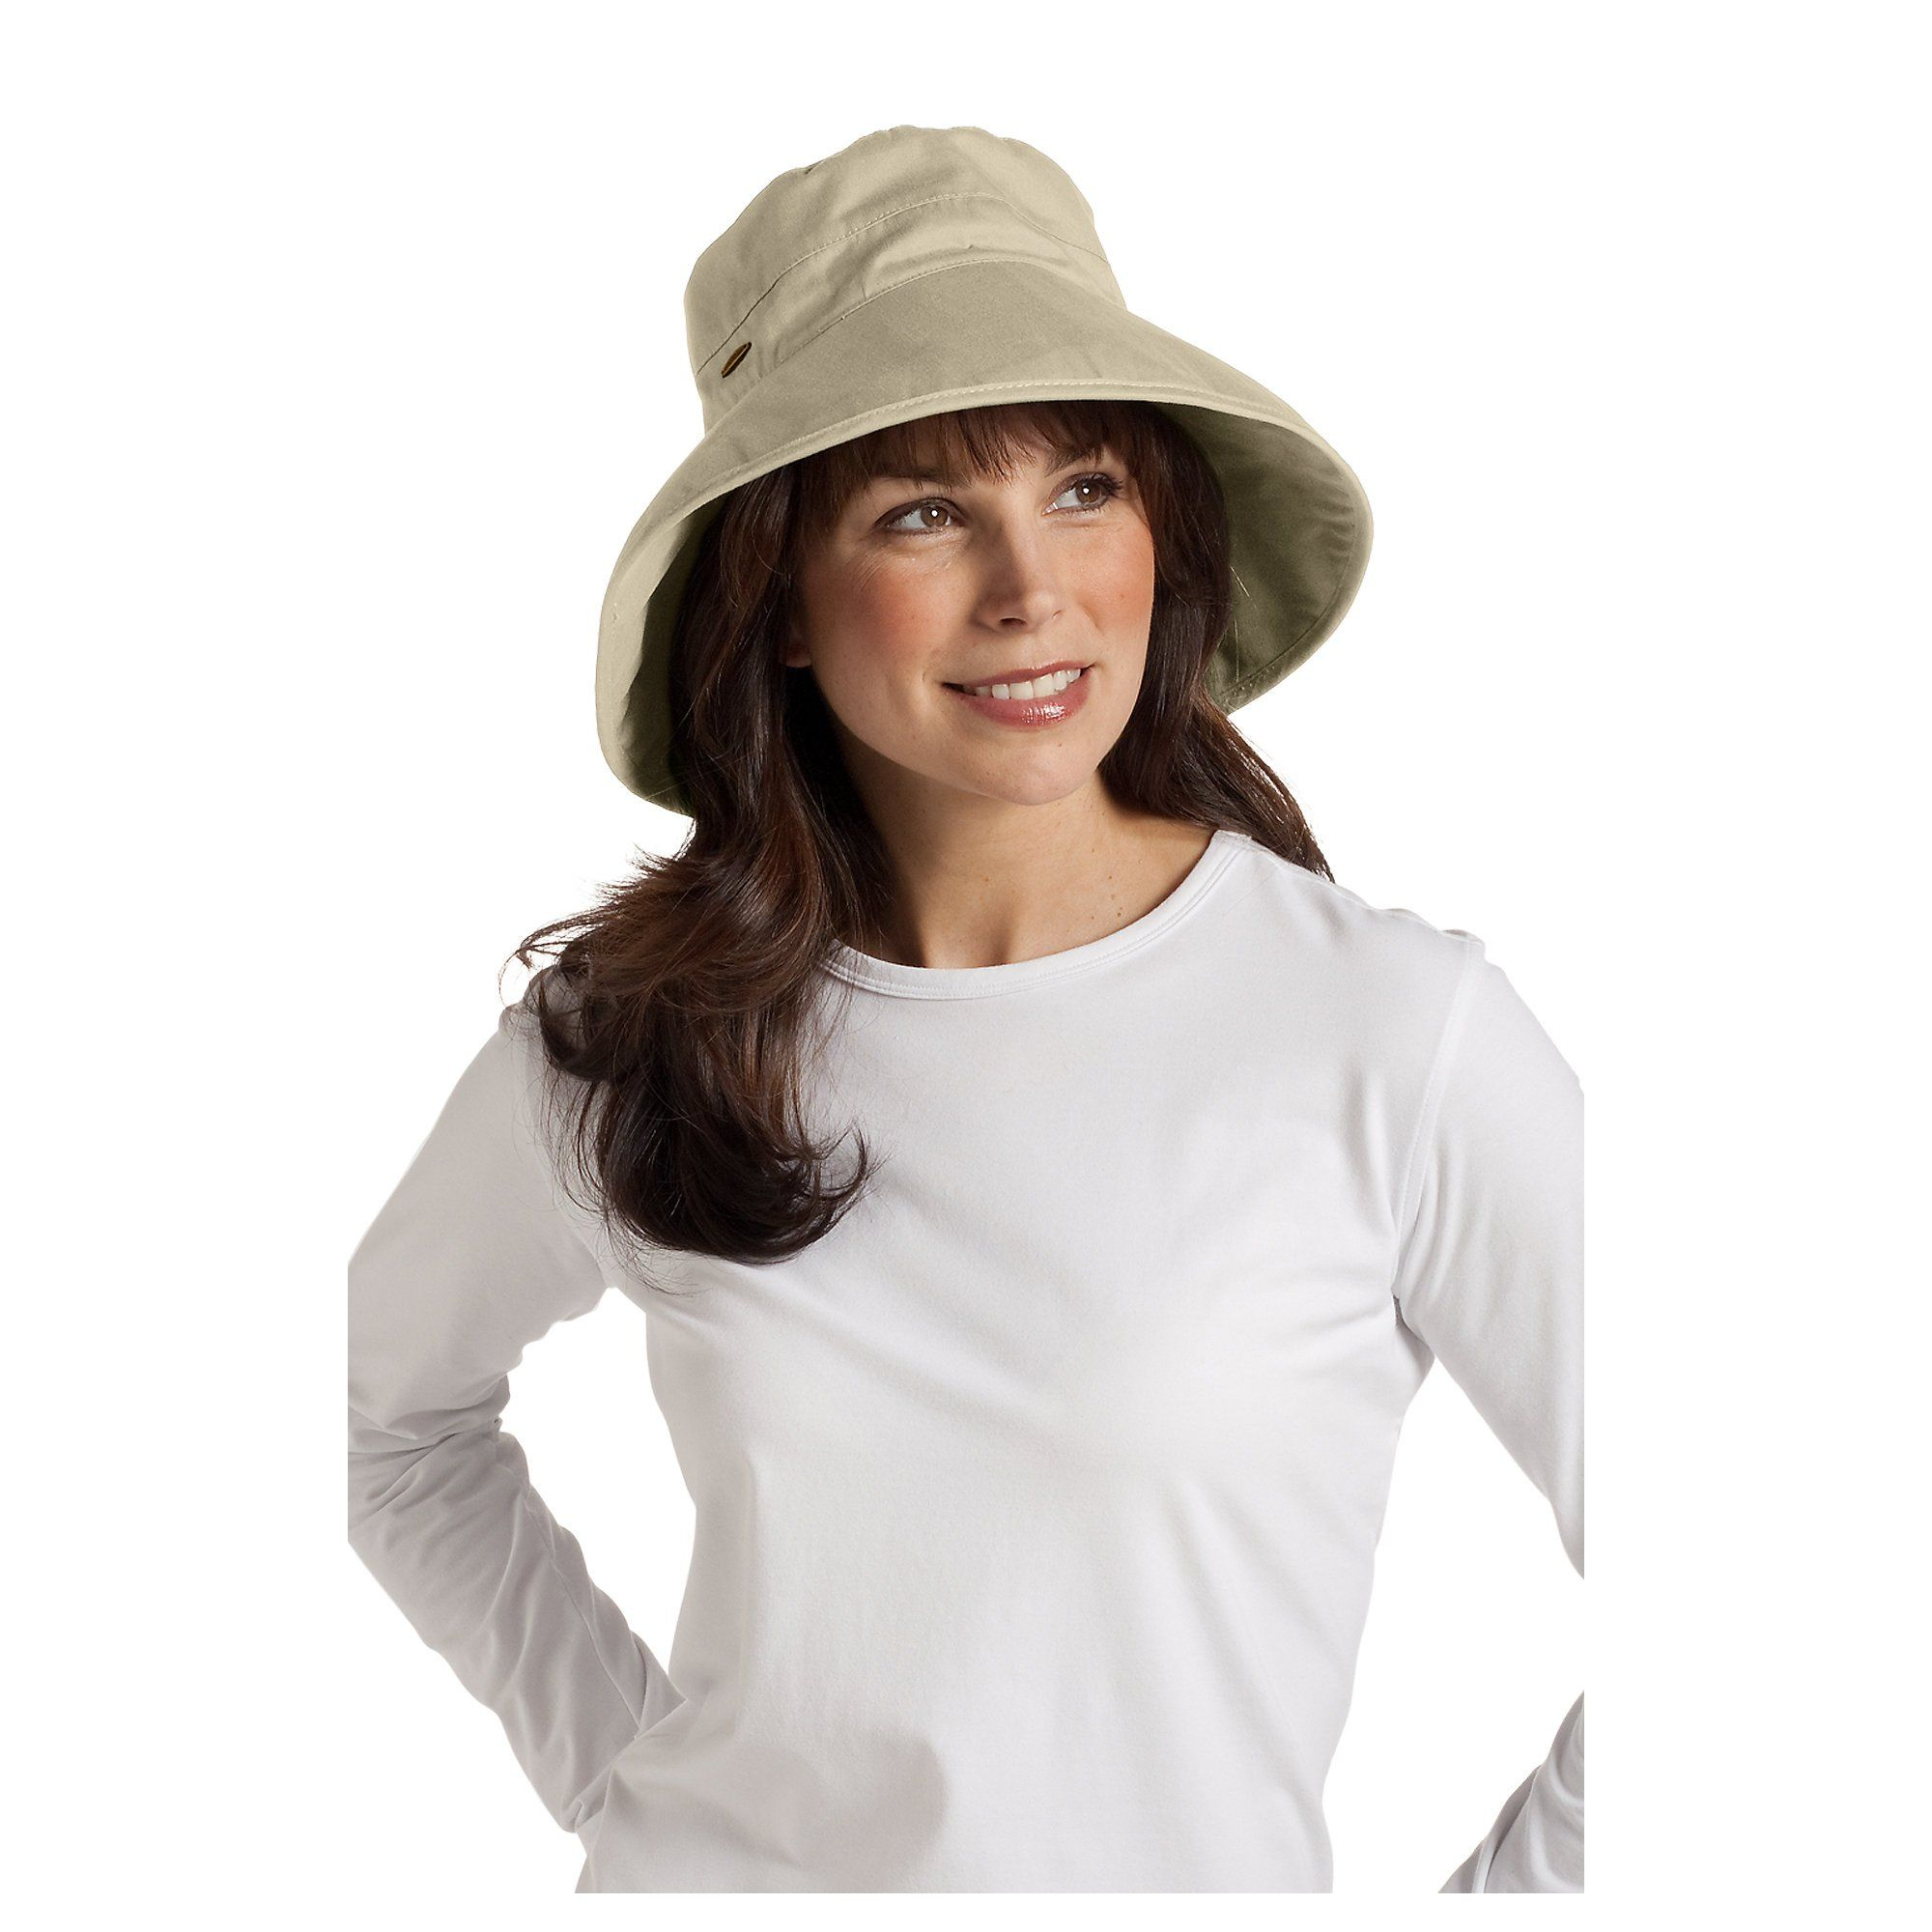 466e0aa12b220 Coolibar UPF 50+ Women s Everyday Cotton Sun Hat (One Size - Tan) at Amazon Women s  Clothing store  Scala Hats